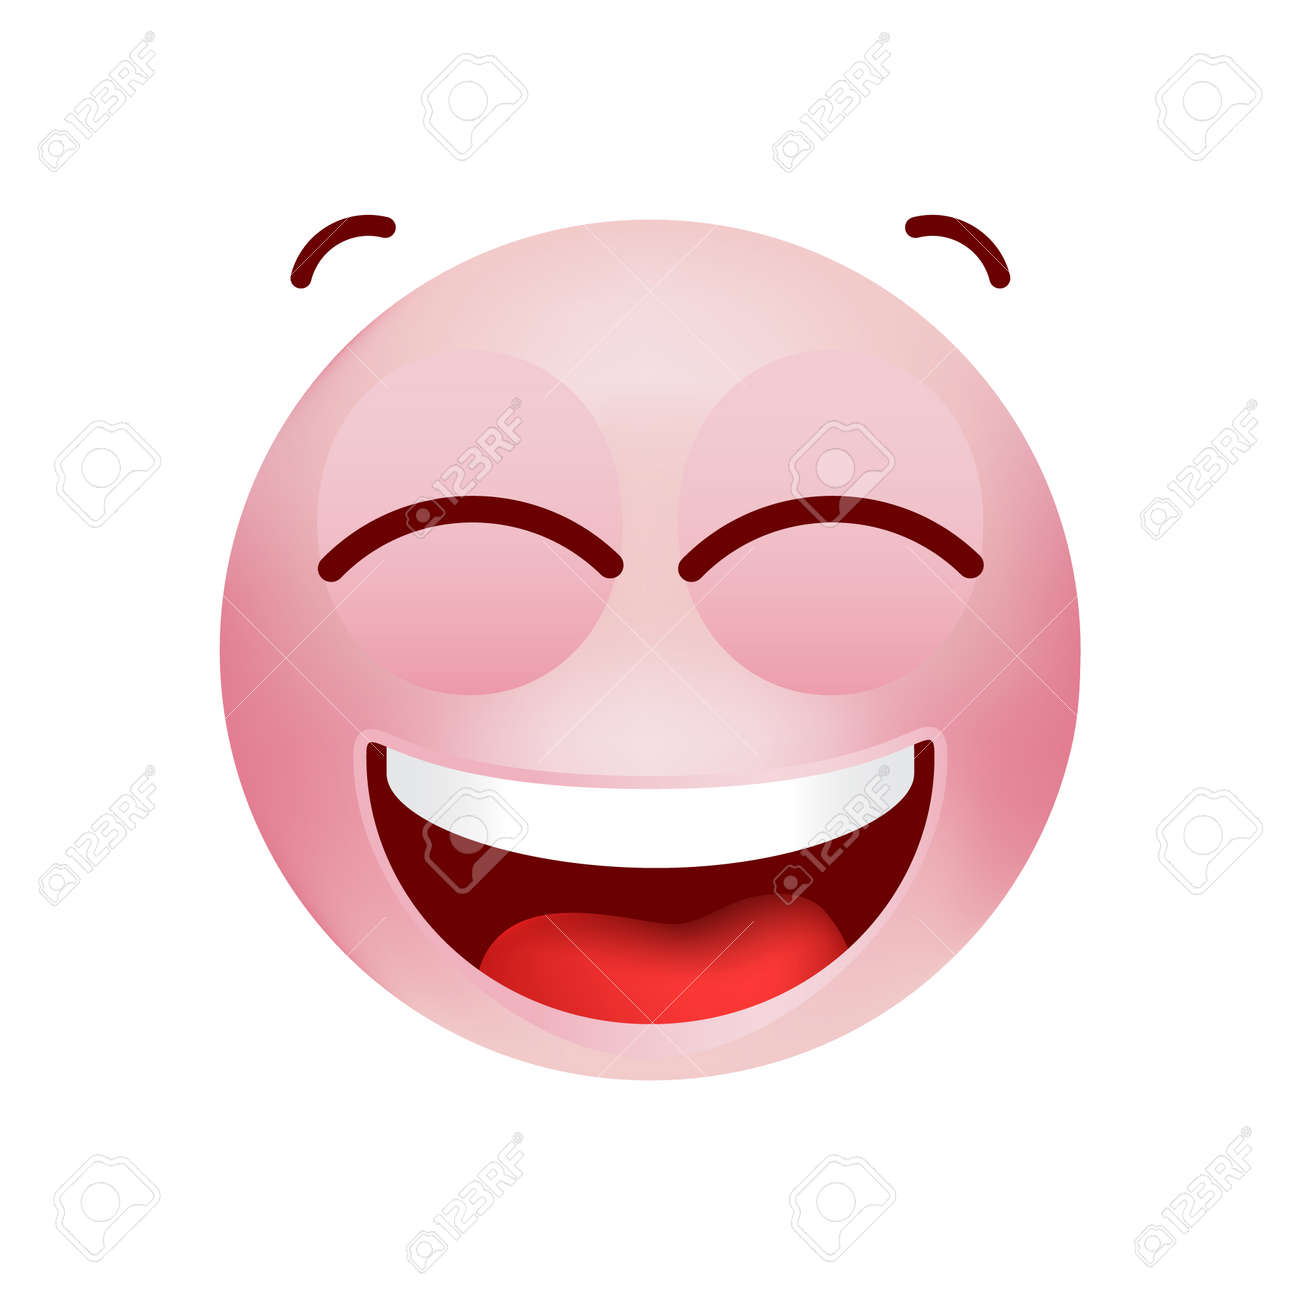 Cute Emoticon with Cartoon Style on White Background . Isolated Vector Illustration - 159240724